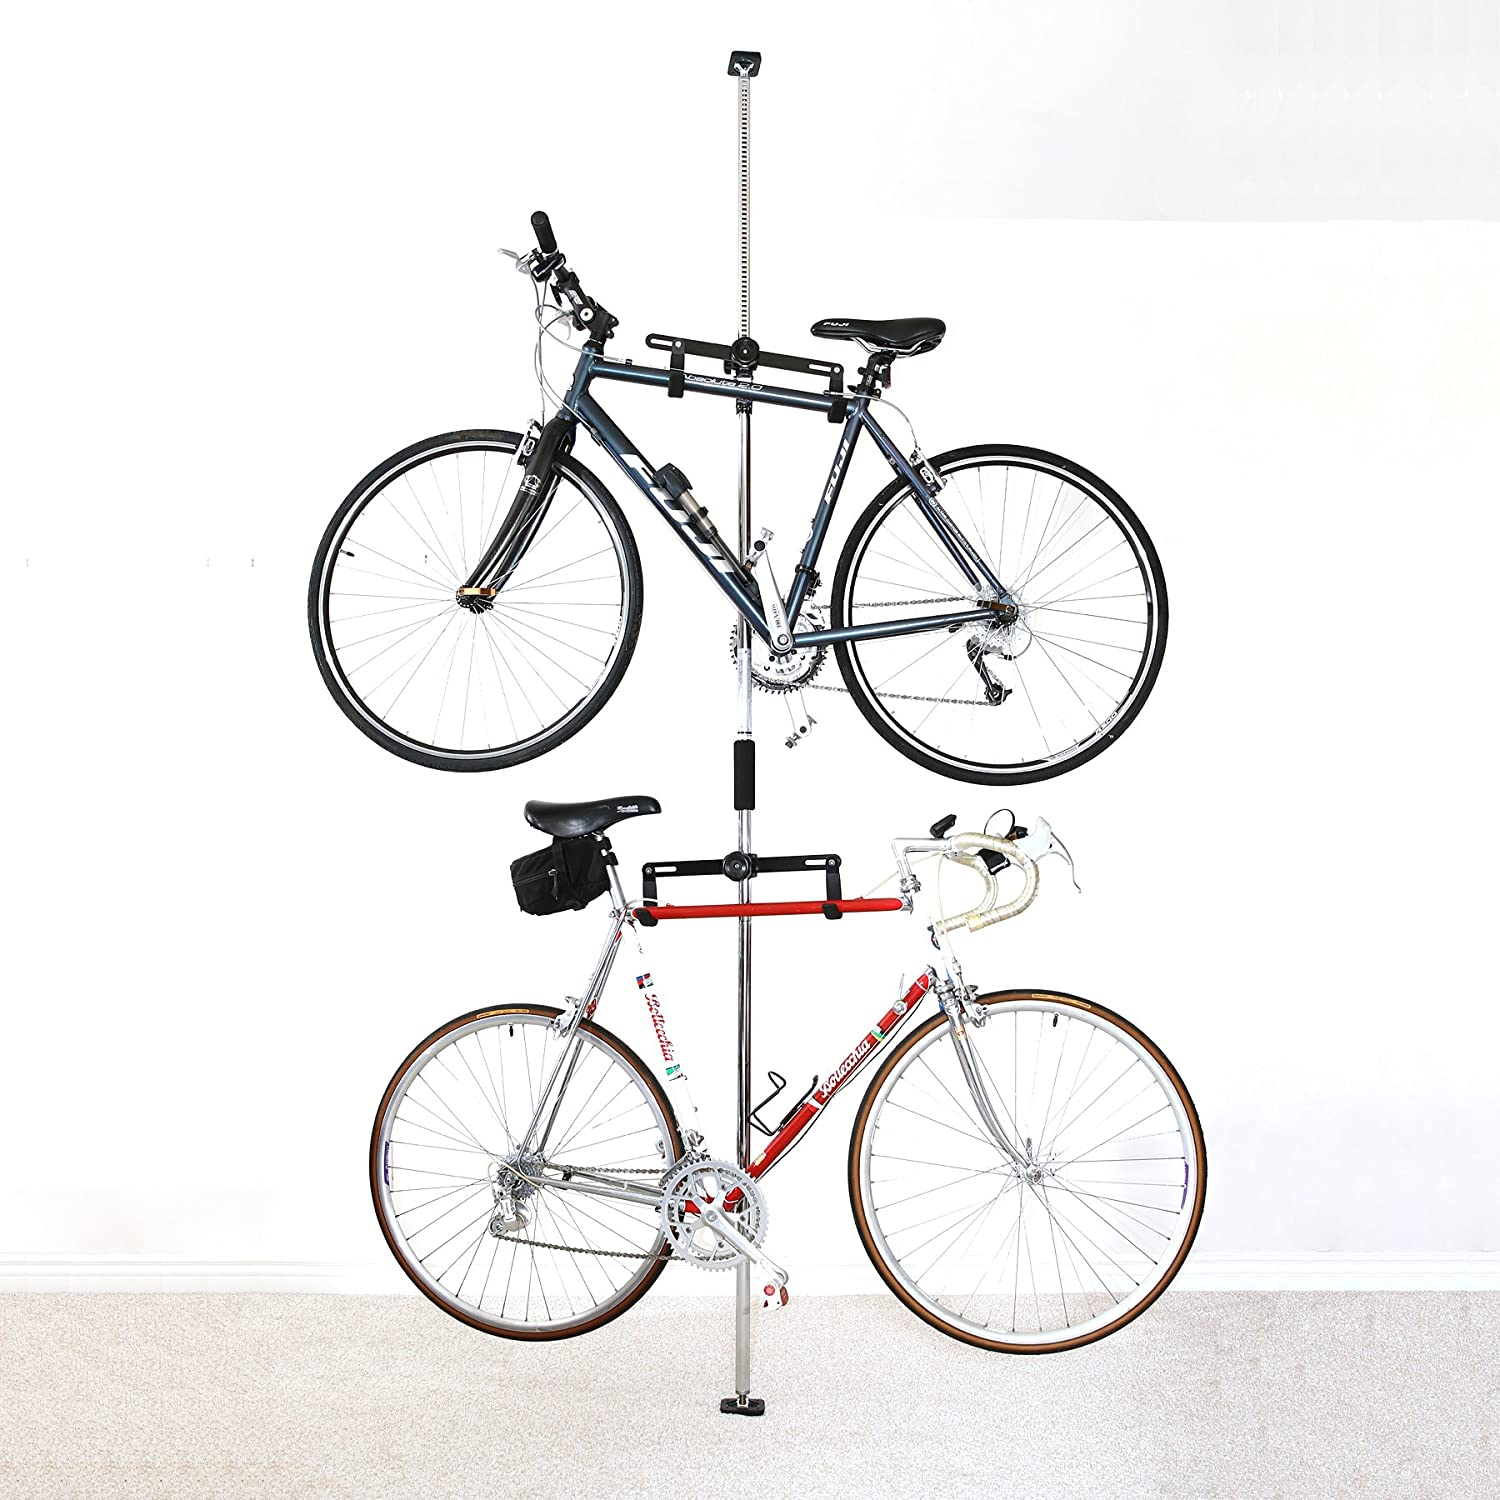 SPAREHAND Q-RAK II Floor-to-Ceiling Freestanding Adjustable Bike Rack Storage, Max Weight Limit 80 lbs,